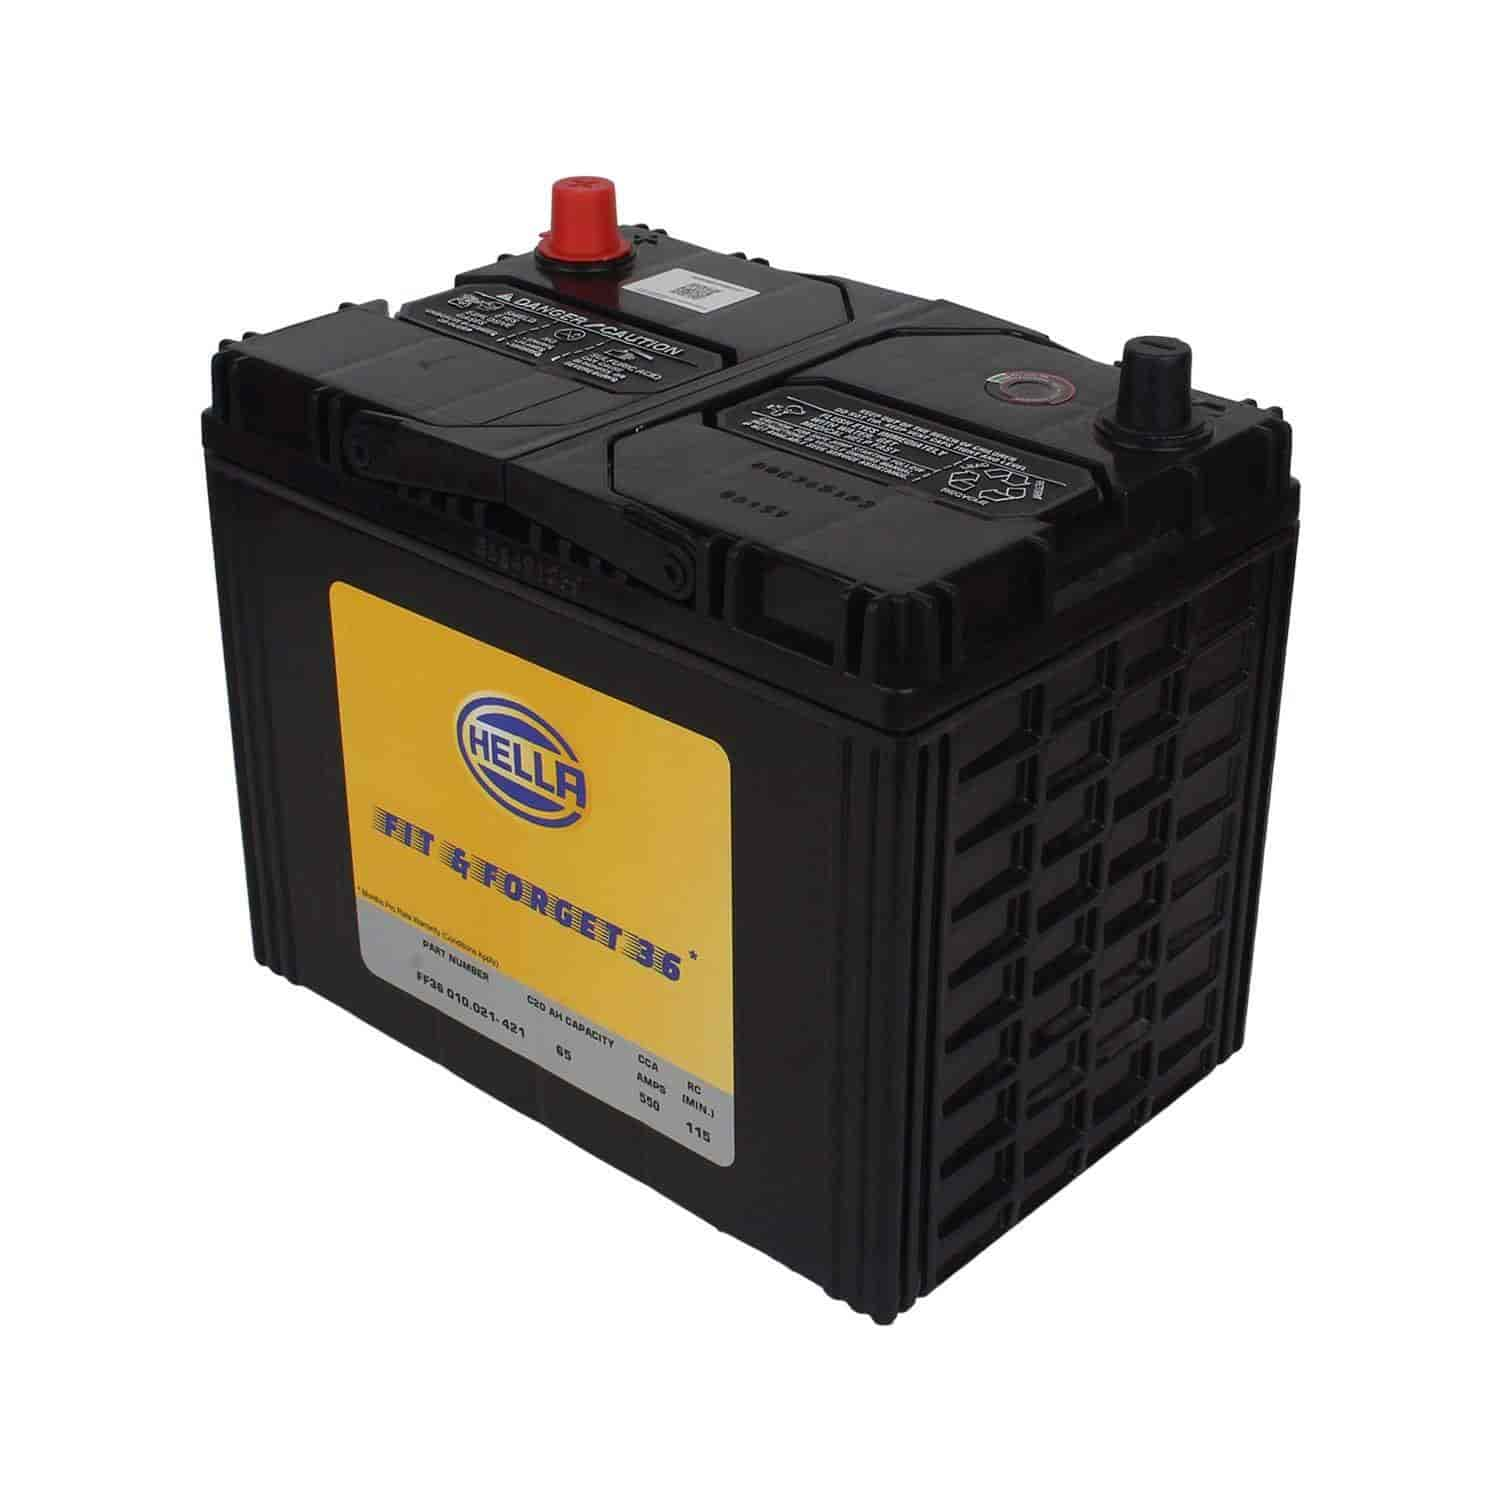 Second Hand Car Batteries For Sale Near Me